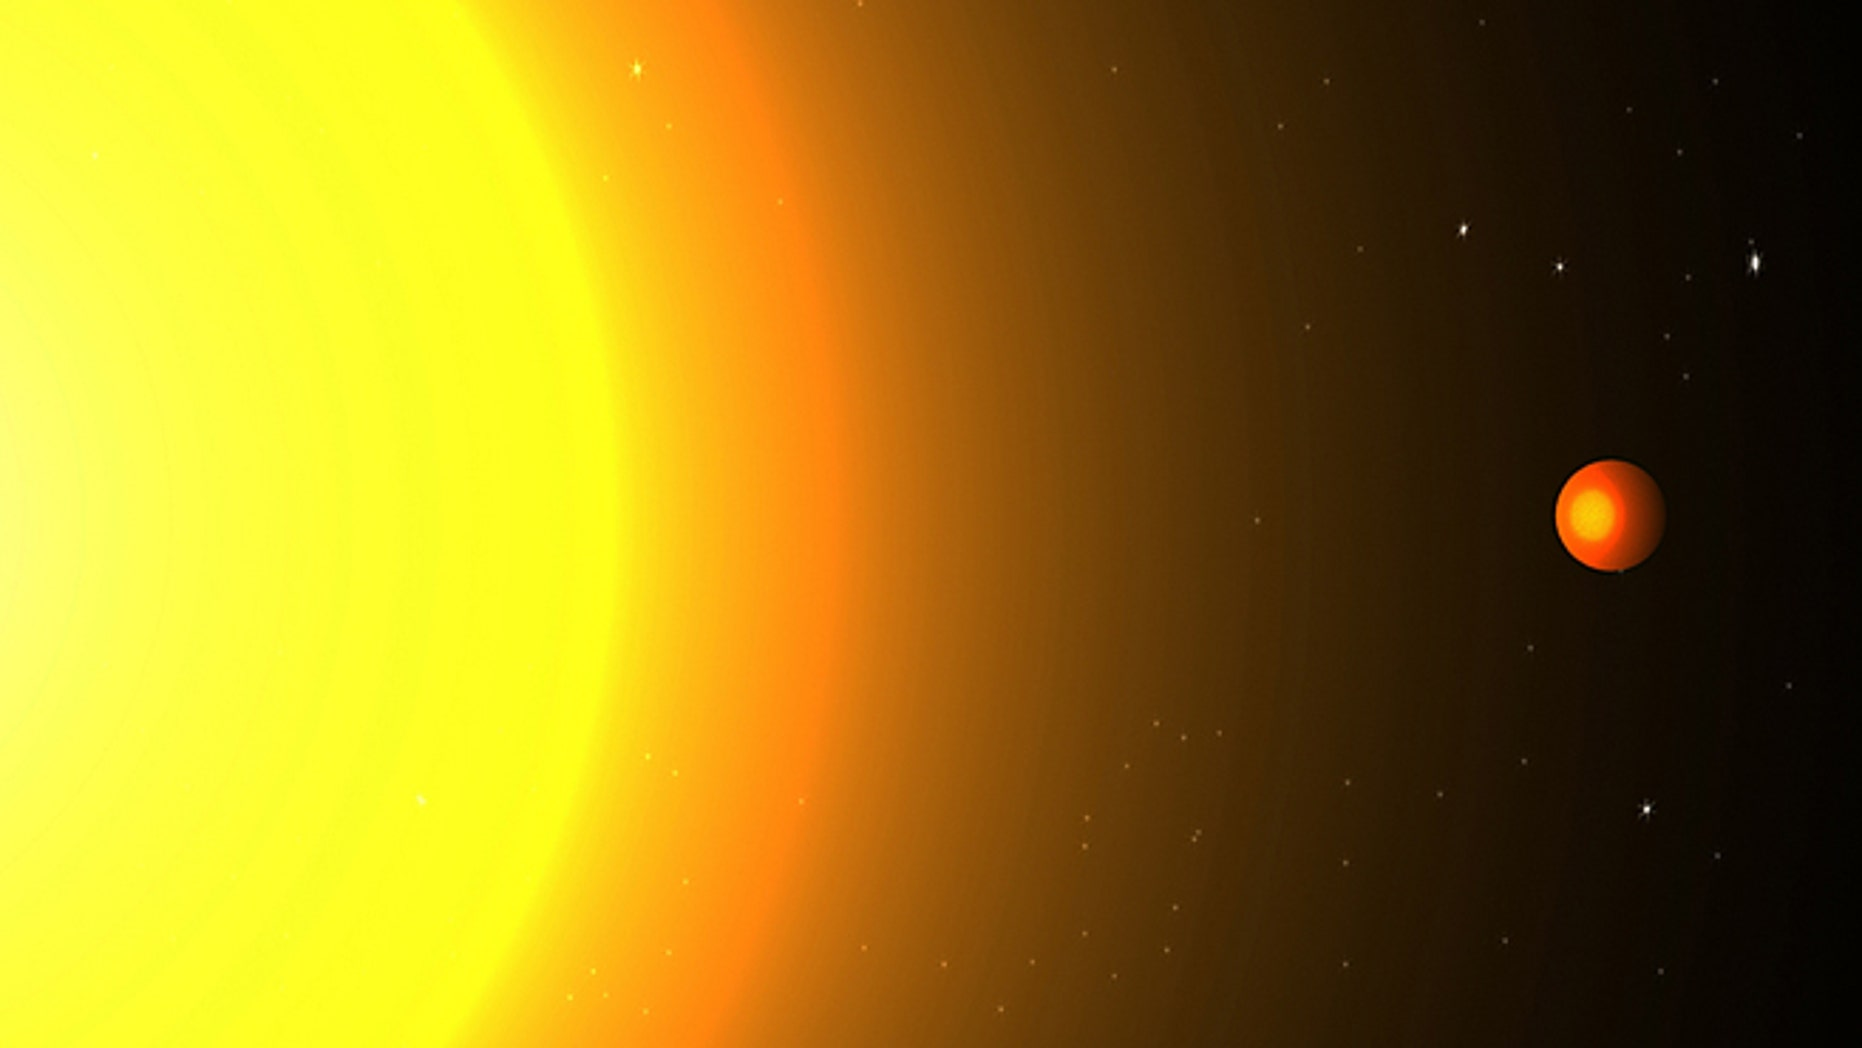 MIT researchers discovered an Earth-sized exoplanet named Kepler 78b that spins around its host star in a short 8.5 hours.